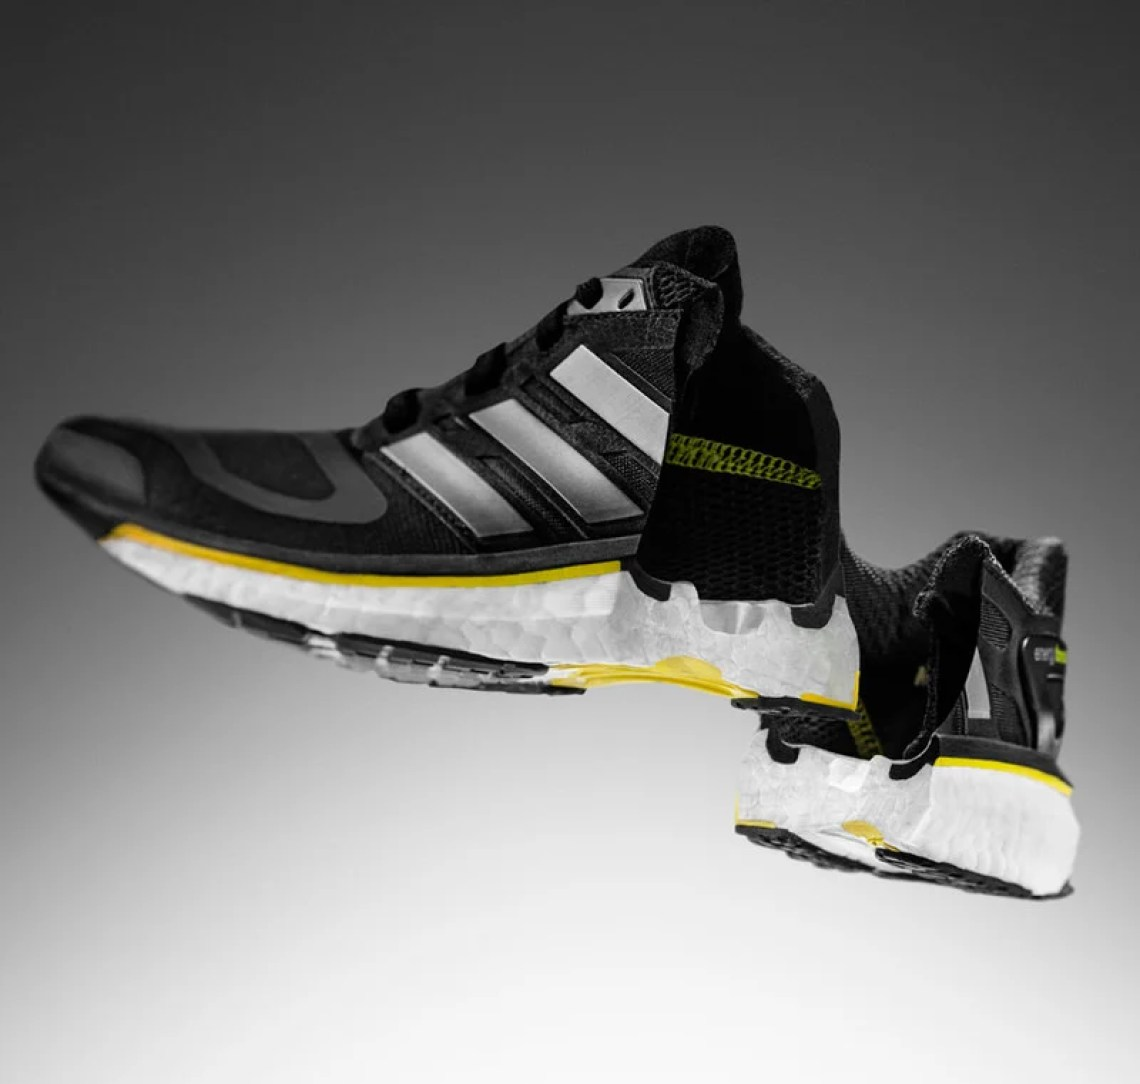 40b63a3fe51 Let s take a look back at how BOOST changed Adidas s running game forever.